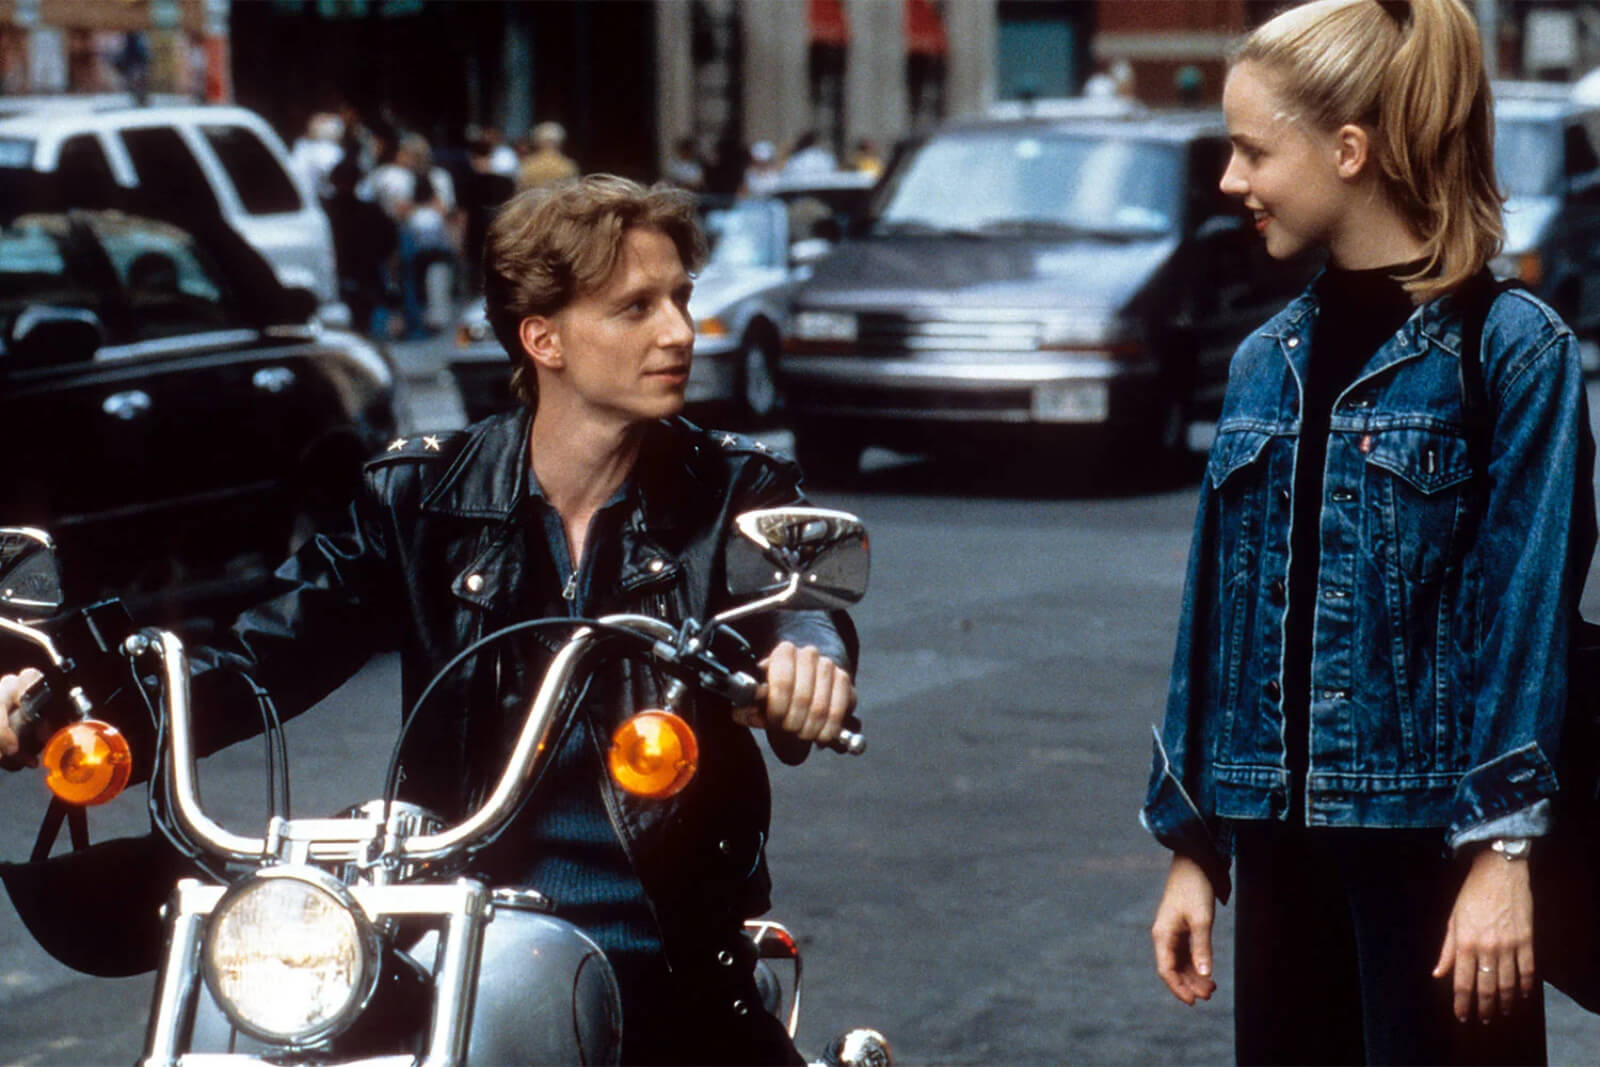 Ethan Stiefel (on motorcycle) speaking to Amanda Schull (standing on street).